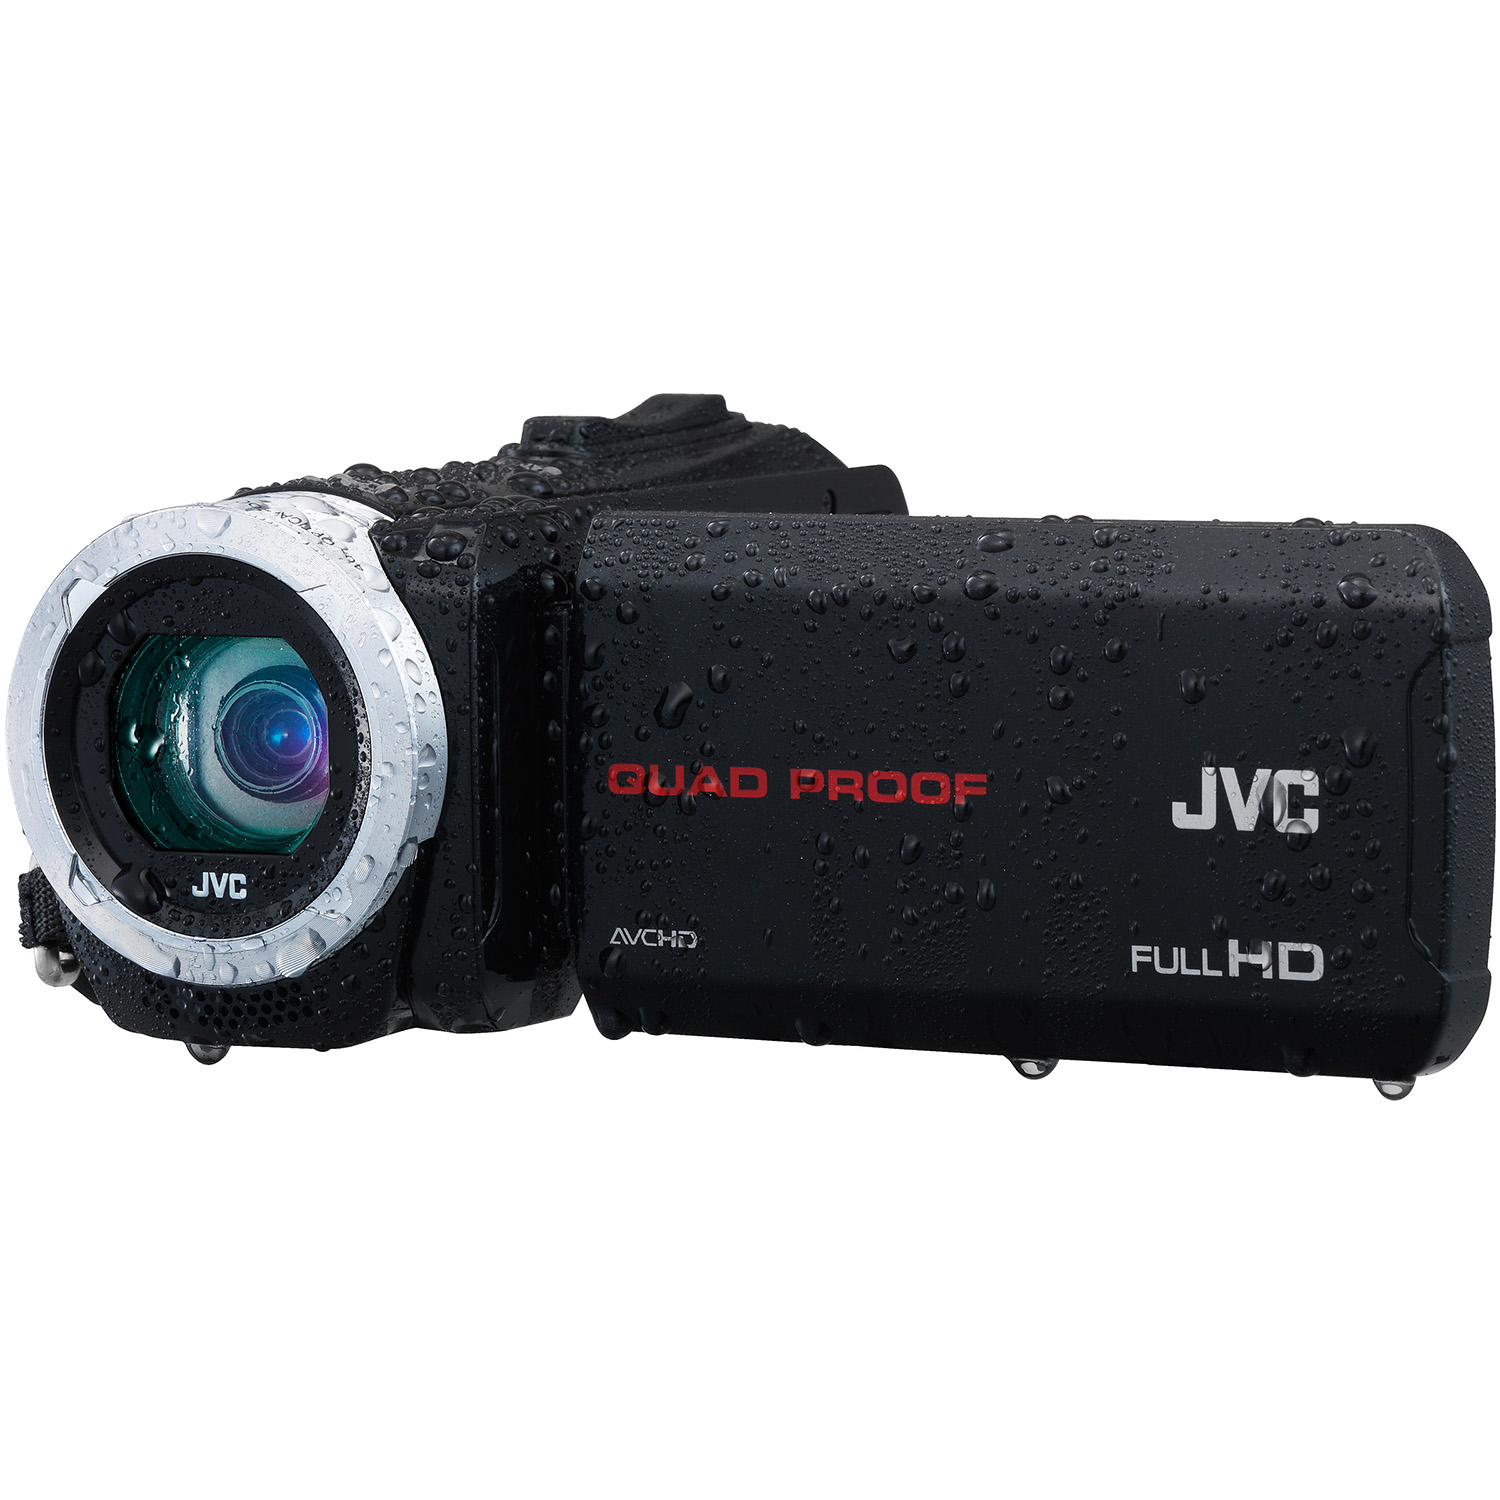 Refurbished JVC Everio GZ-R10BU Quad Proof Dynamic Zoom Full HD 1080p Video Camcorder